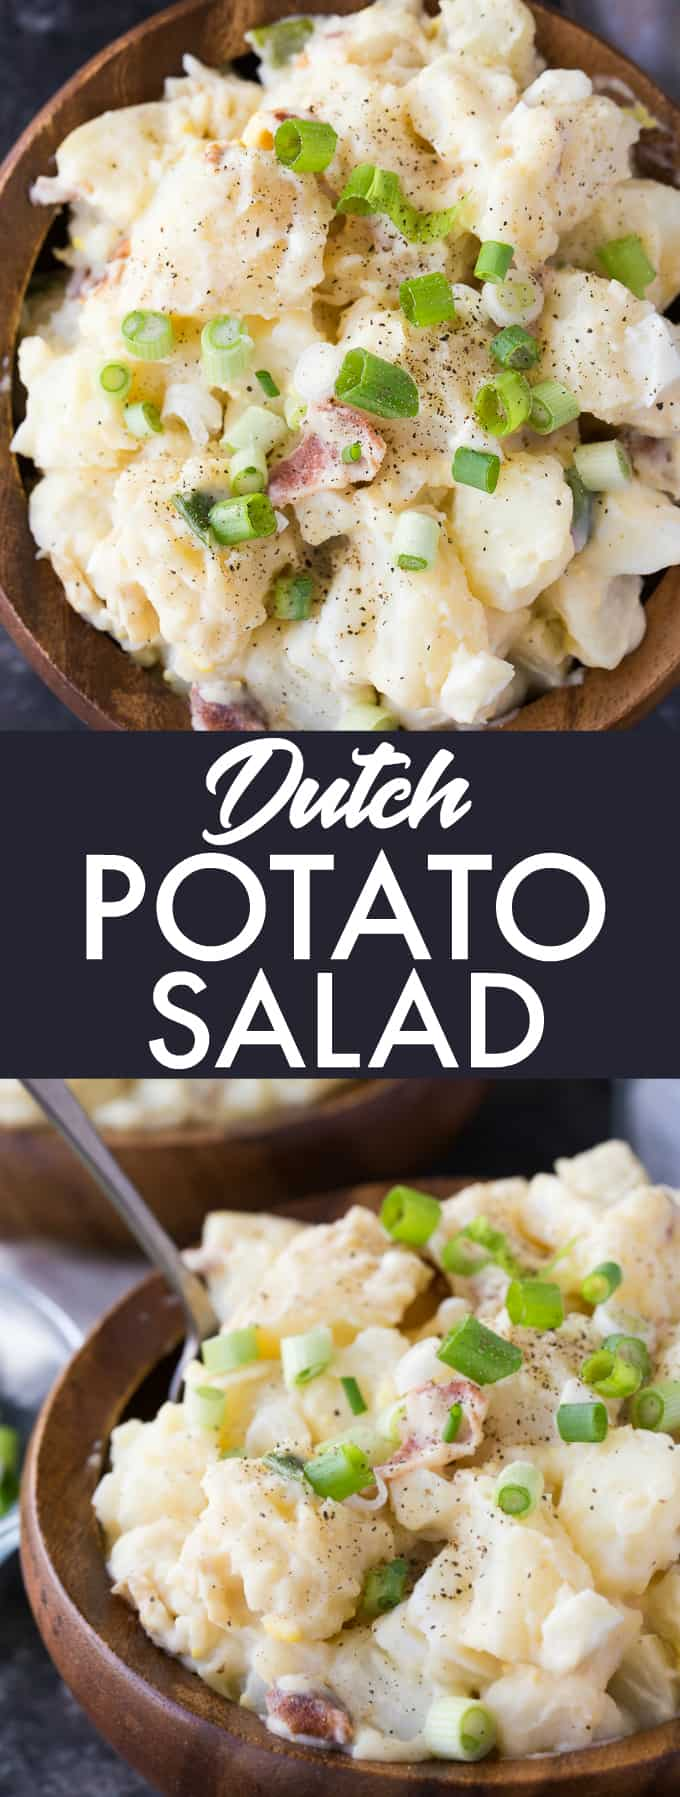 Dutch Potato Salad - Creamy, flavourful and delicious! This easy summer side salad is a must-make for a surefire crowdpleaser!